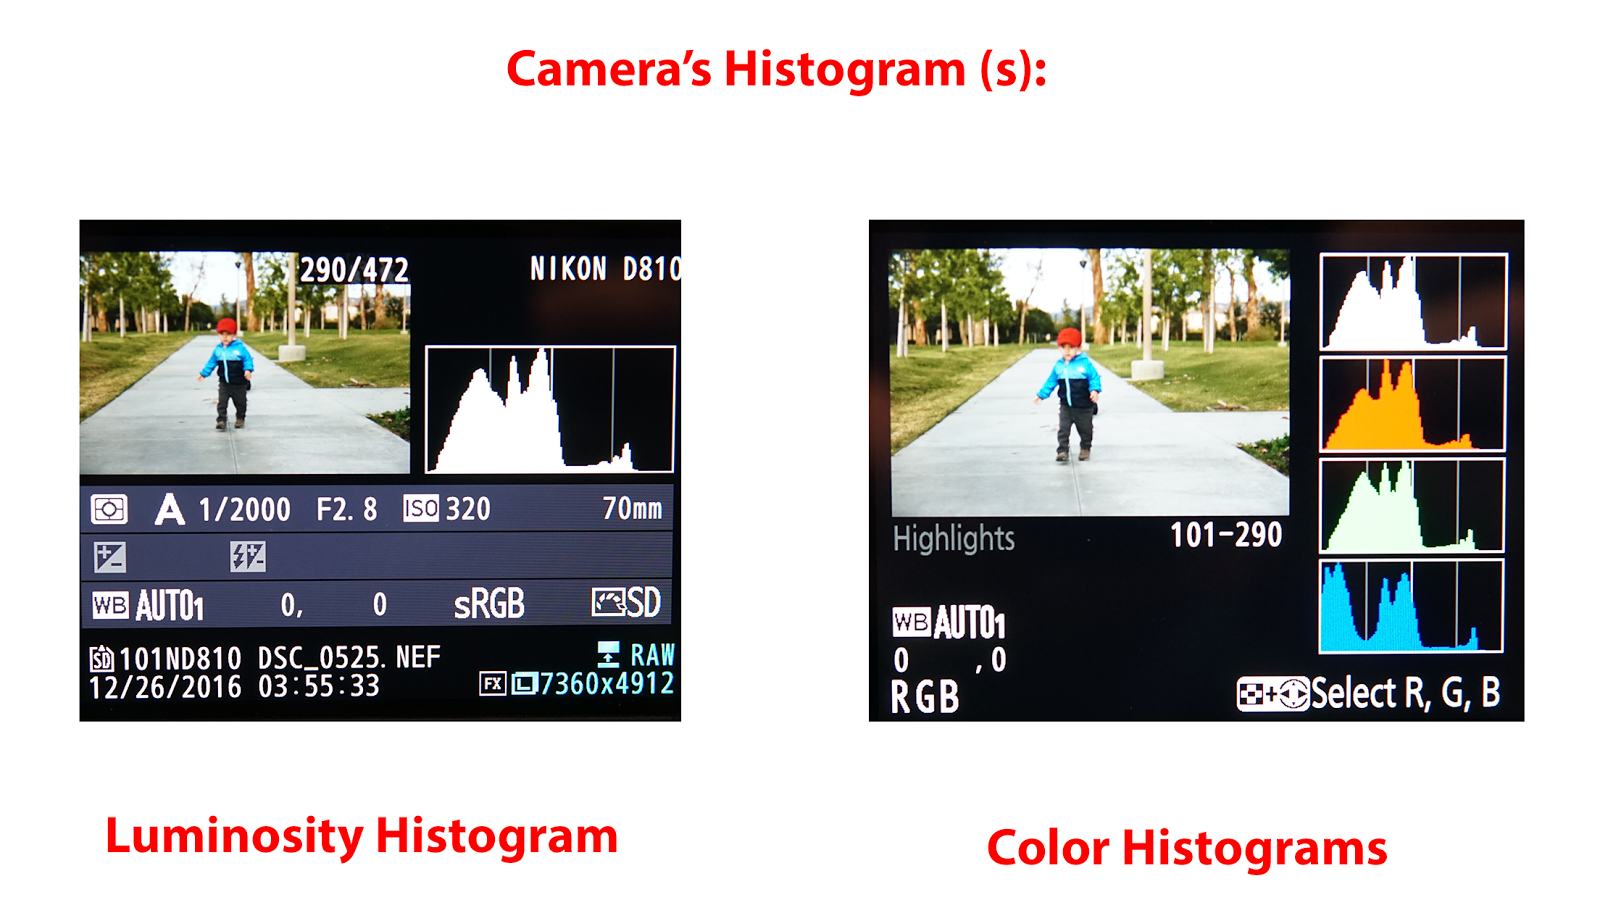 Demystified How To Read A Histogram 02 image